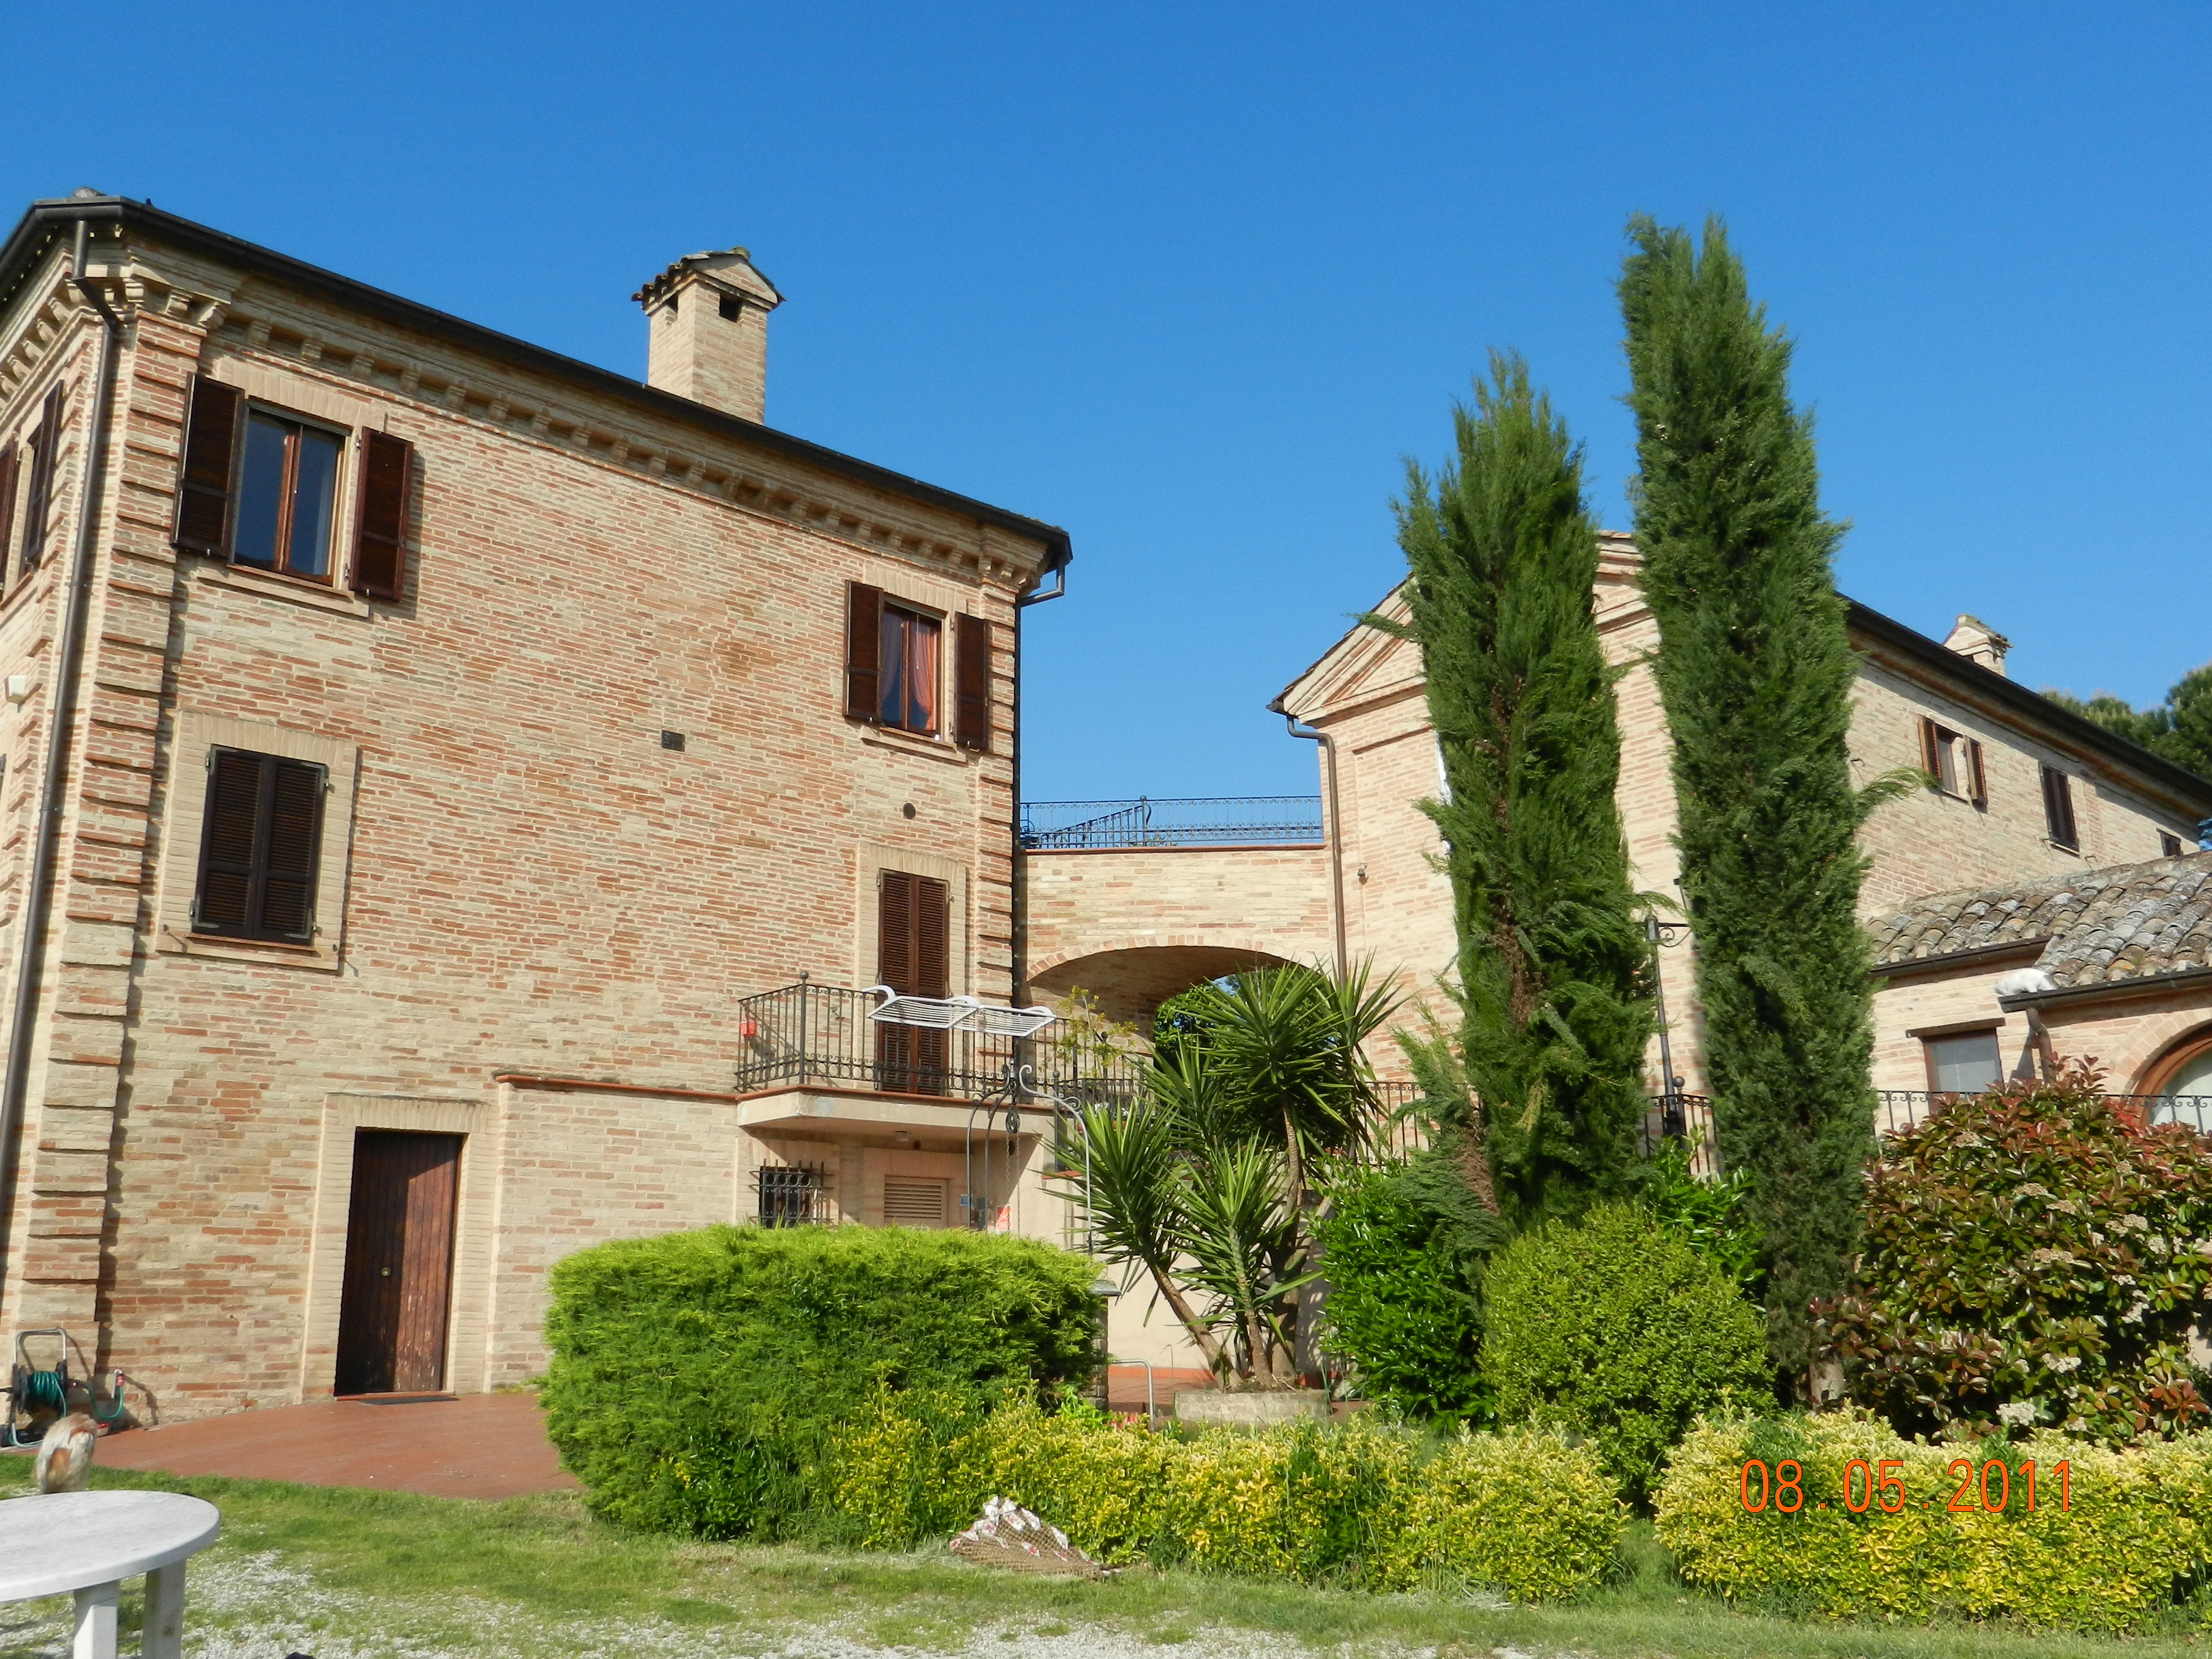 Luxury villa with church for sale in Marche